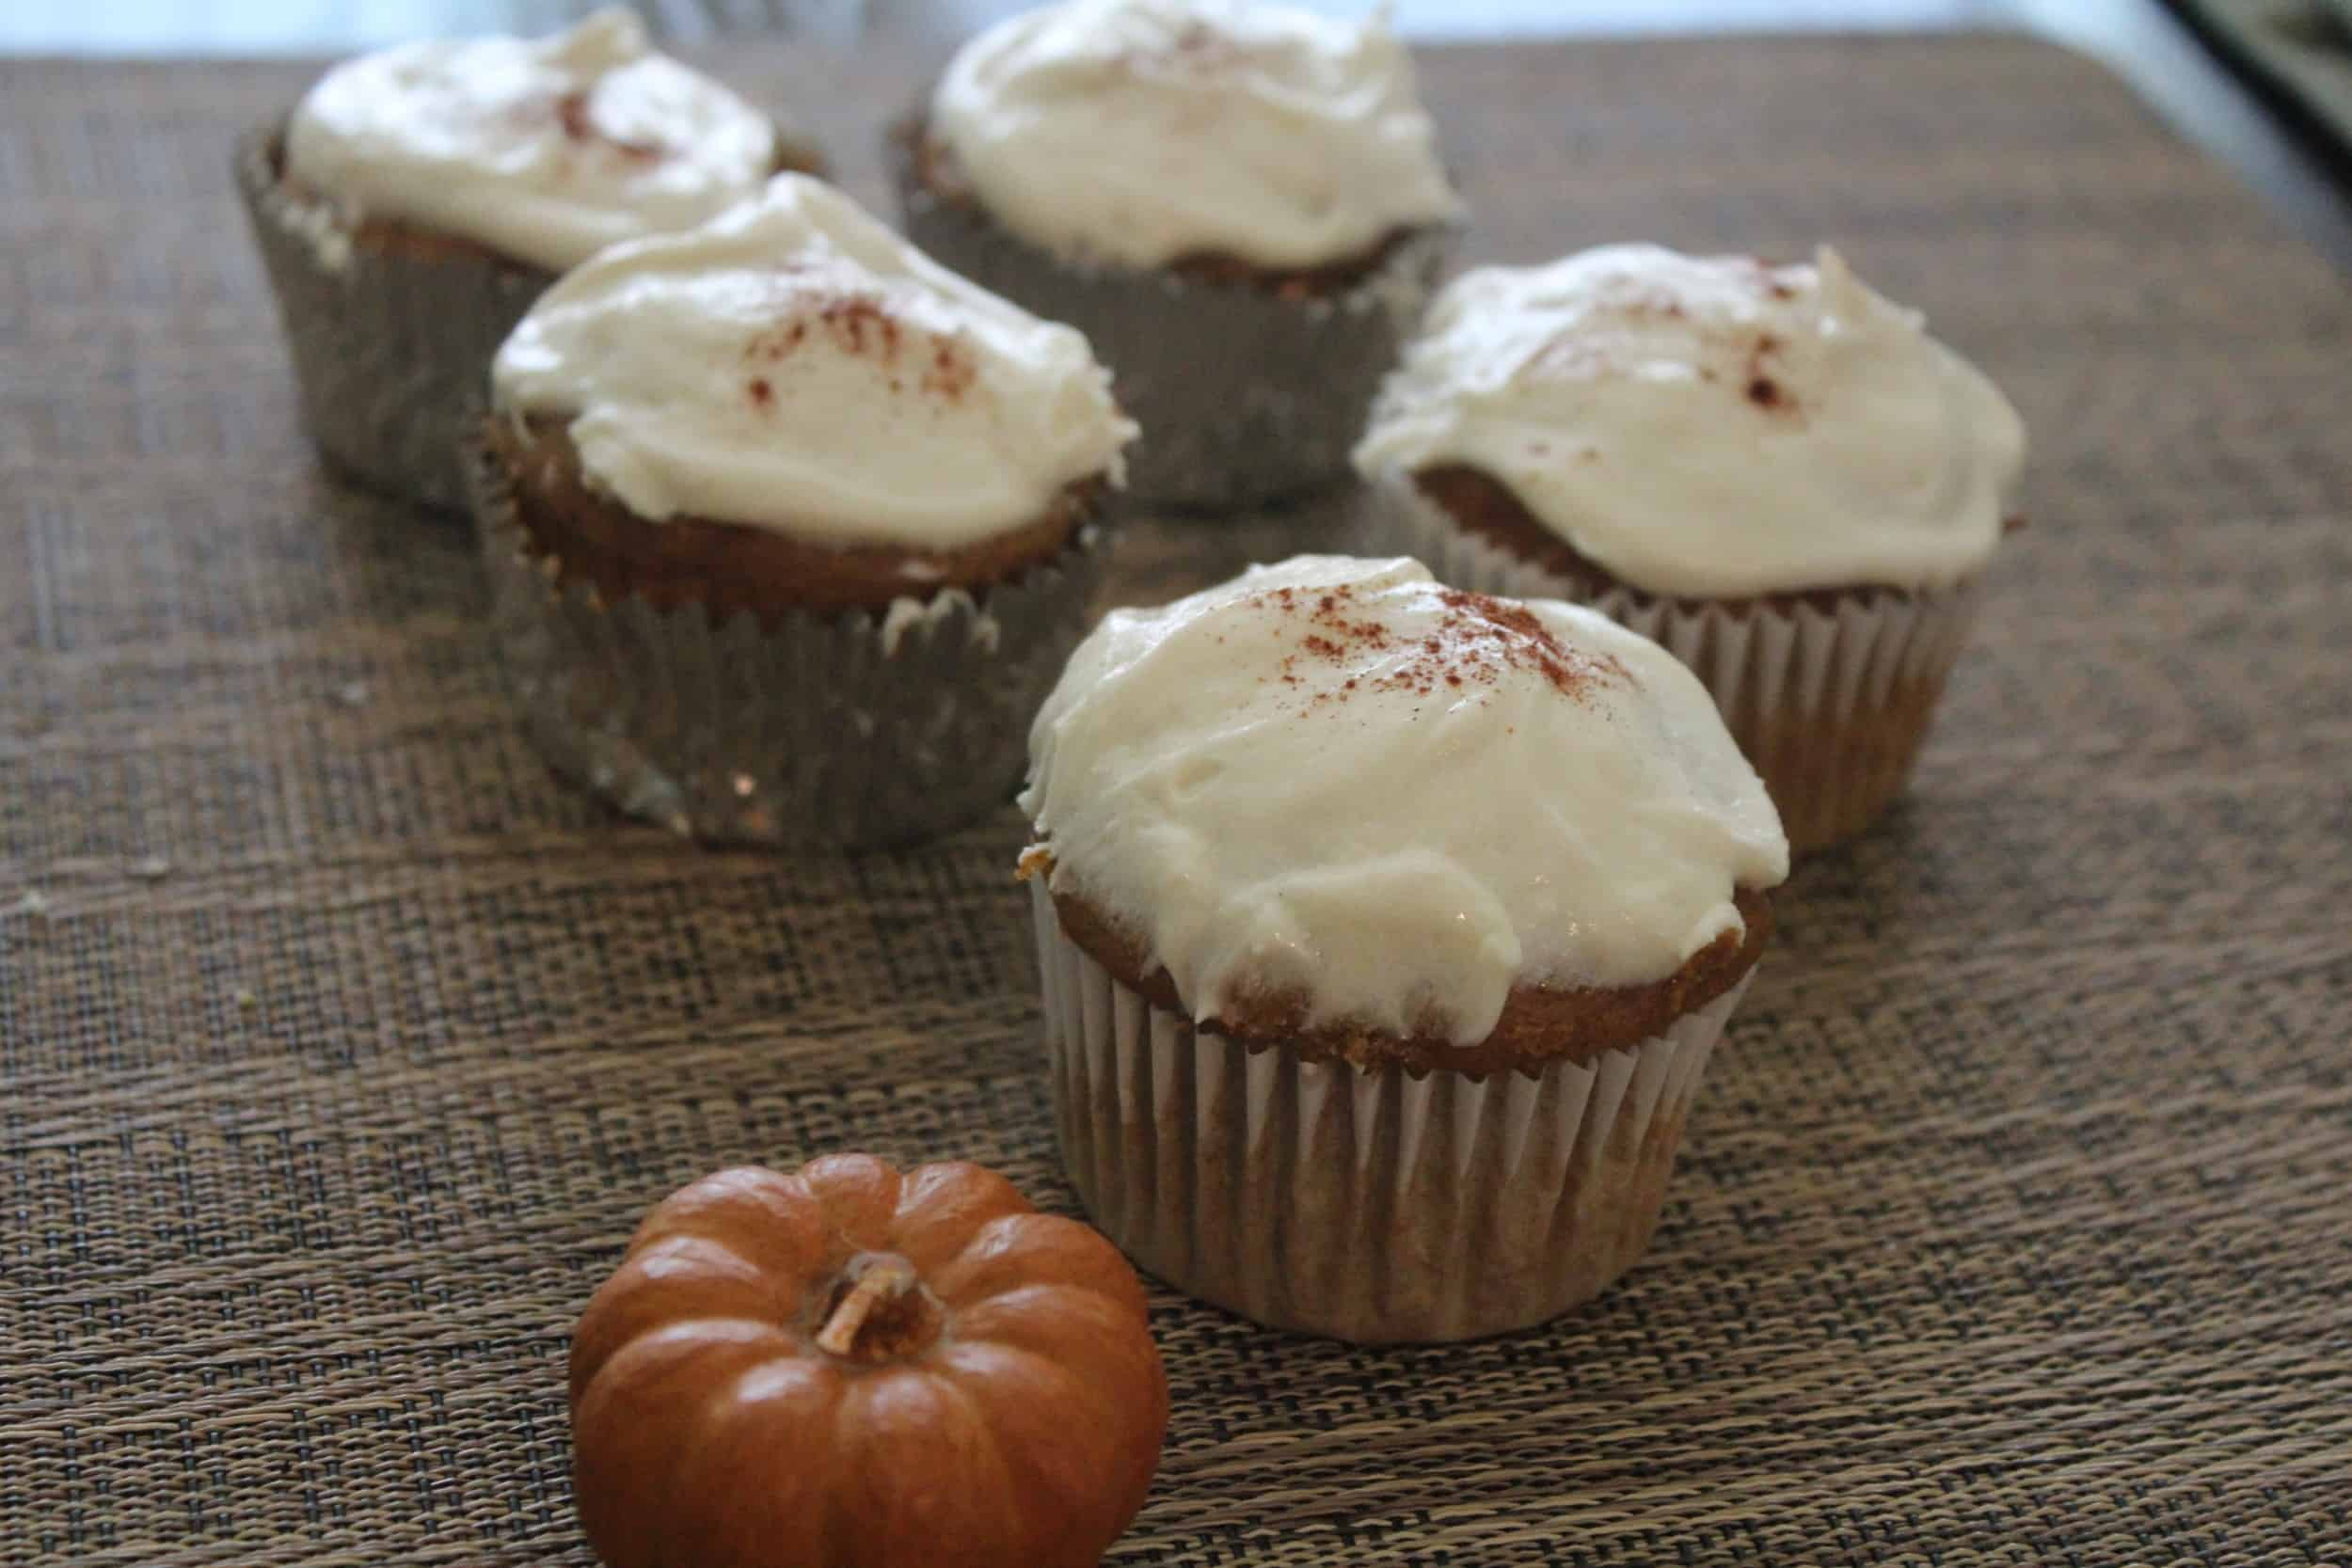 Image of Pumpkin Cupcakes with Cream Cheese Frosting